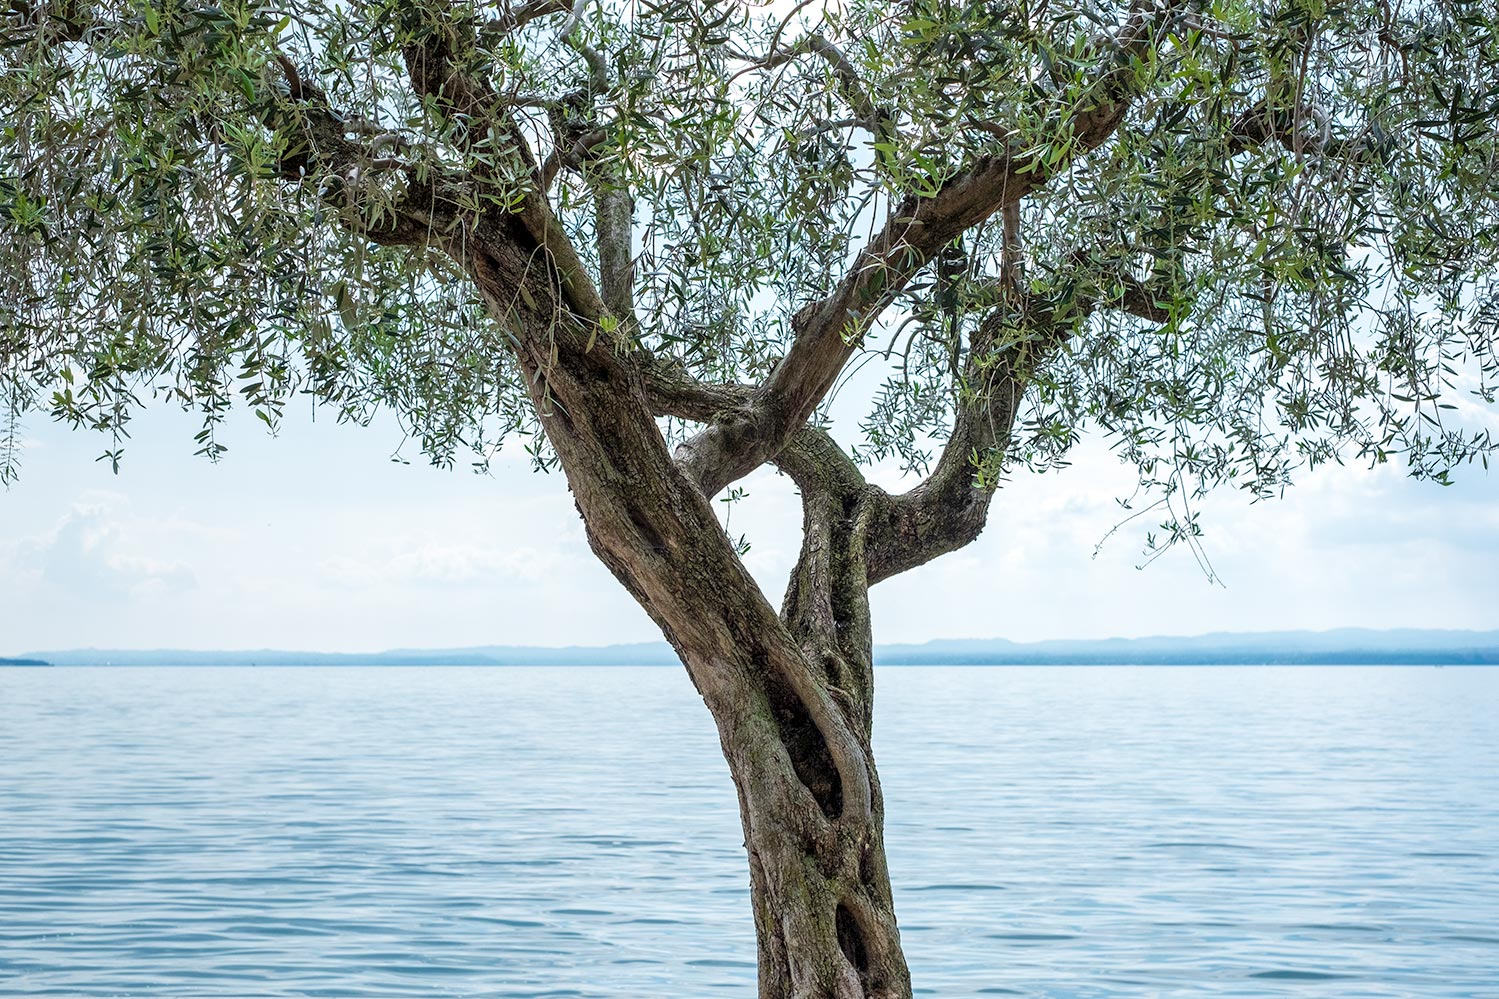 A tightly cropped image of an Olive Tree on the banks of the light blue Lake Garda, Italy.